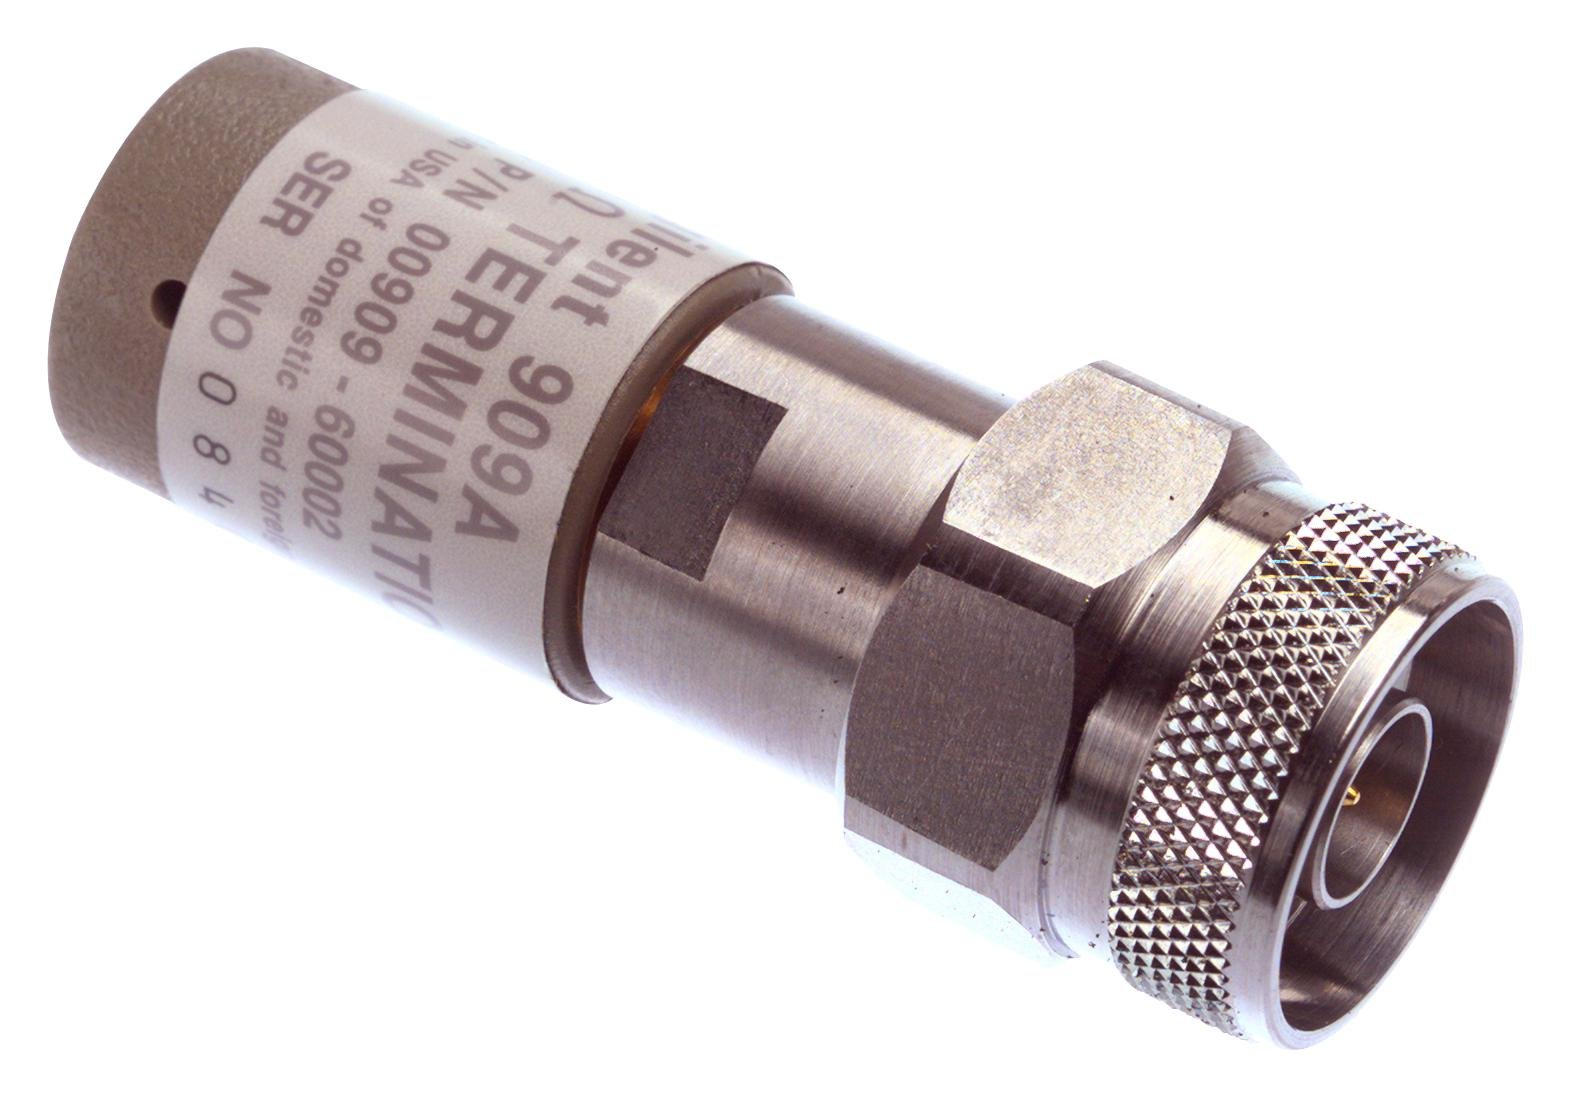 KEYSIGHT TECHNOLOGIES 909A/012 Test Accessory, Coaxial Termination, N Male Connector, DC to 8GHz by Keysight